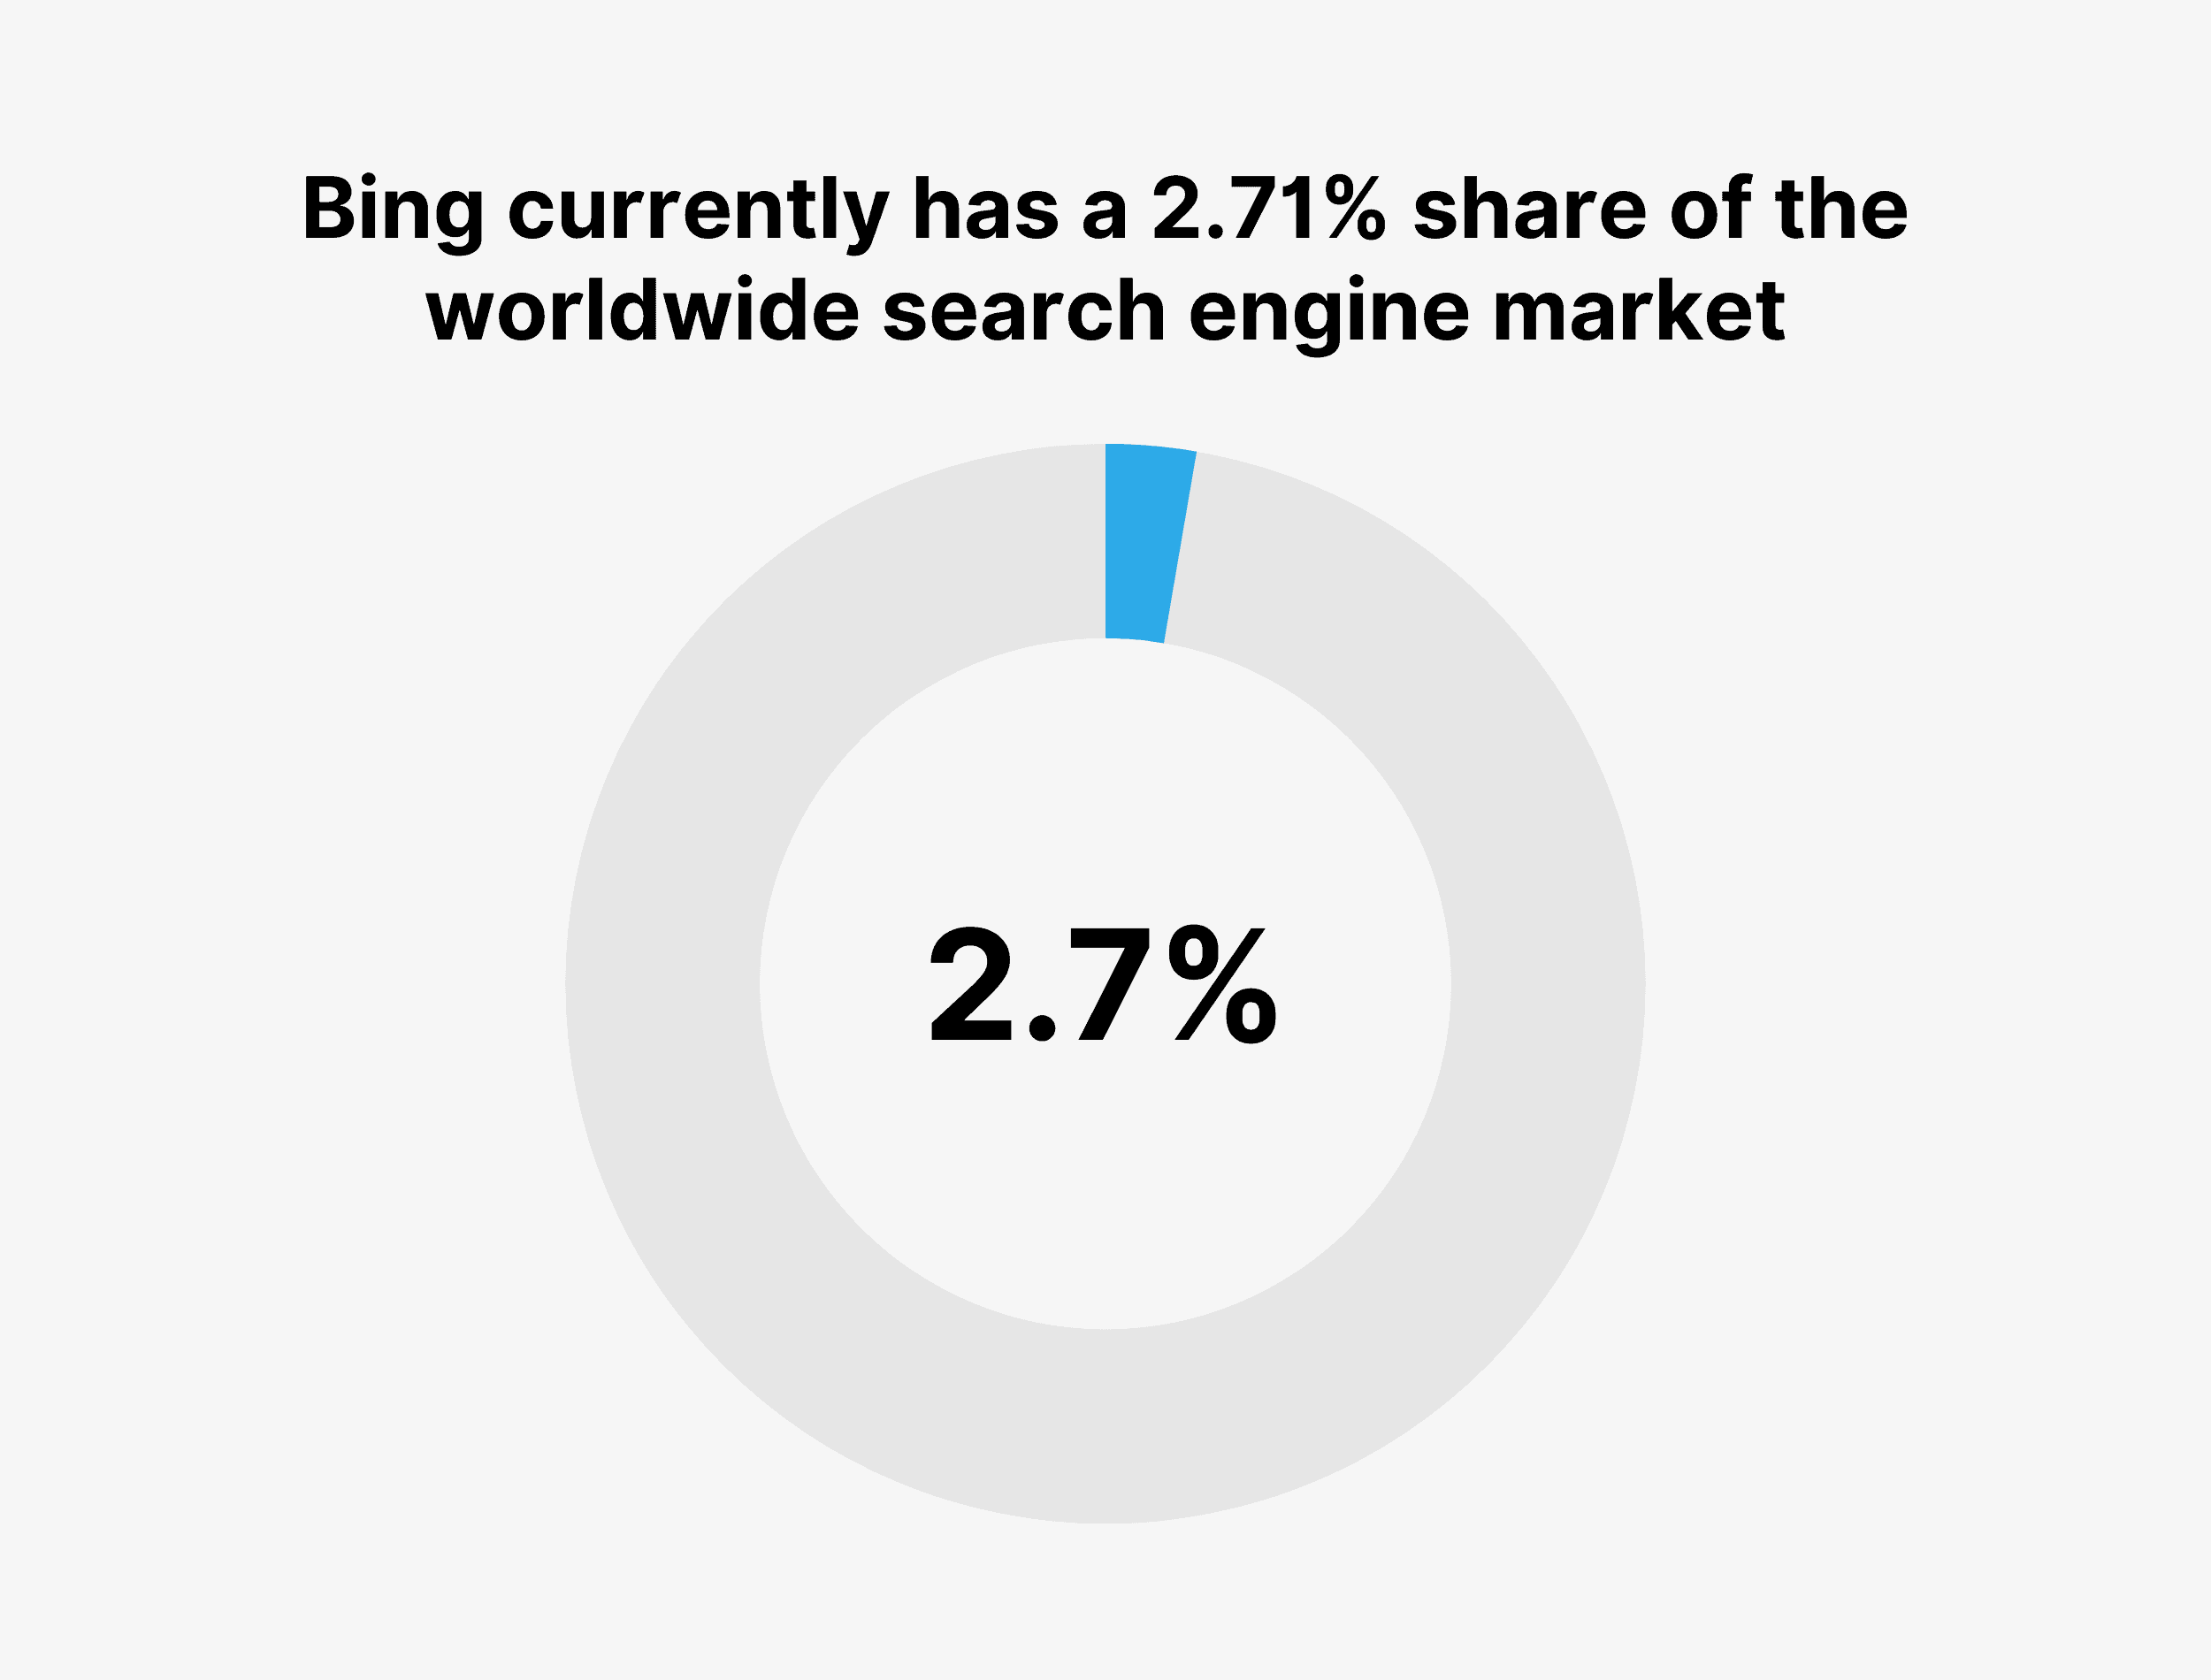 Bing currently has a 2.71% share of the worldwide search engine market